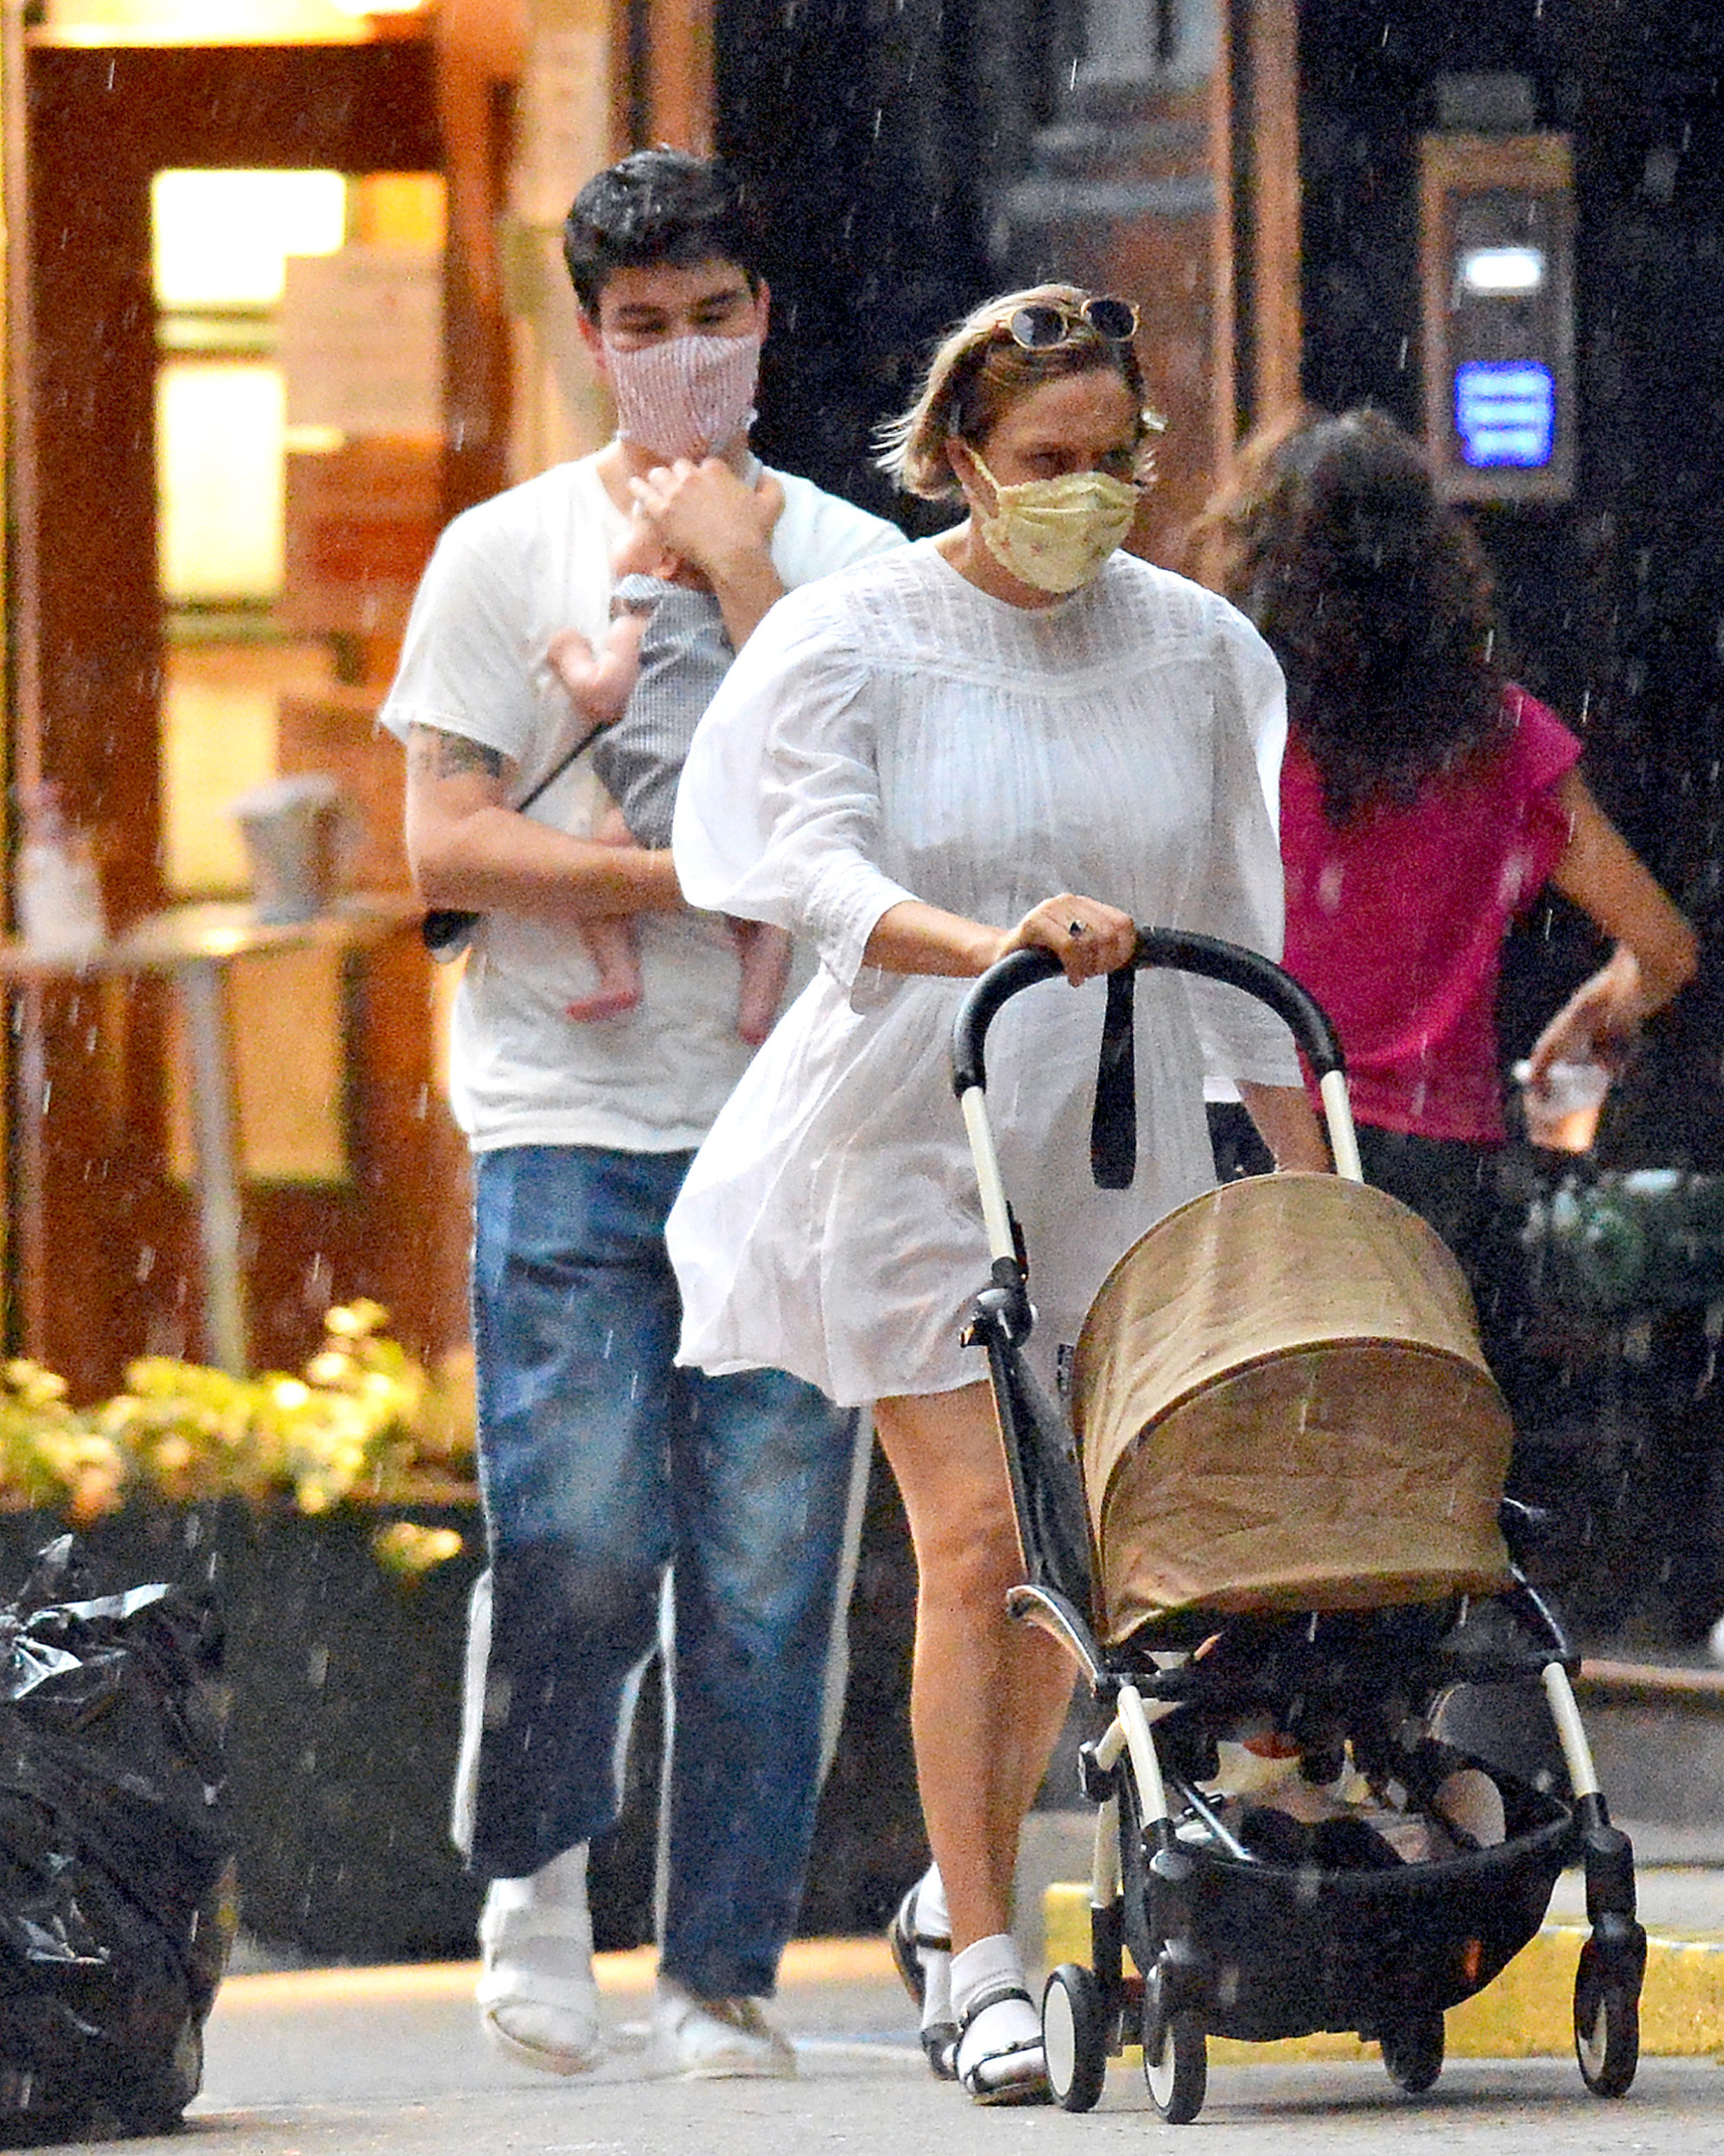 06/28/2020 EXCLUSIVE: Chloe Sevigny gets caught in a brief sun shower as she heads out with Sinisa Mackovic in New York City. The 45 year old actress flashed a ring on her left hand sparking engagement rumours. Sevigny wore a face mask, white dress, matching socks, and black sandals.,Image: 537072122, License: Rights-managed, Restrictions: Exclusive NO usage without agreed price and terms. Please contact sales@theimagedirect.com, Model Release: no, Credit line: TheImageDirect.com / The Image Direct / Profimedia